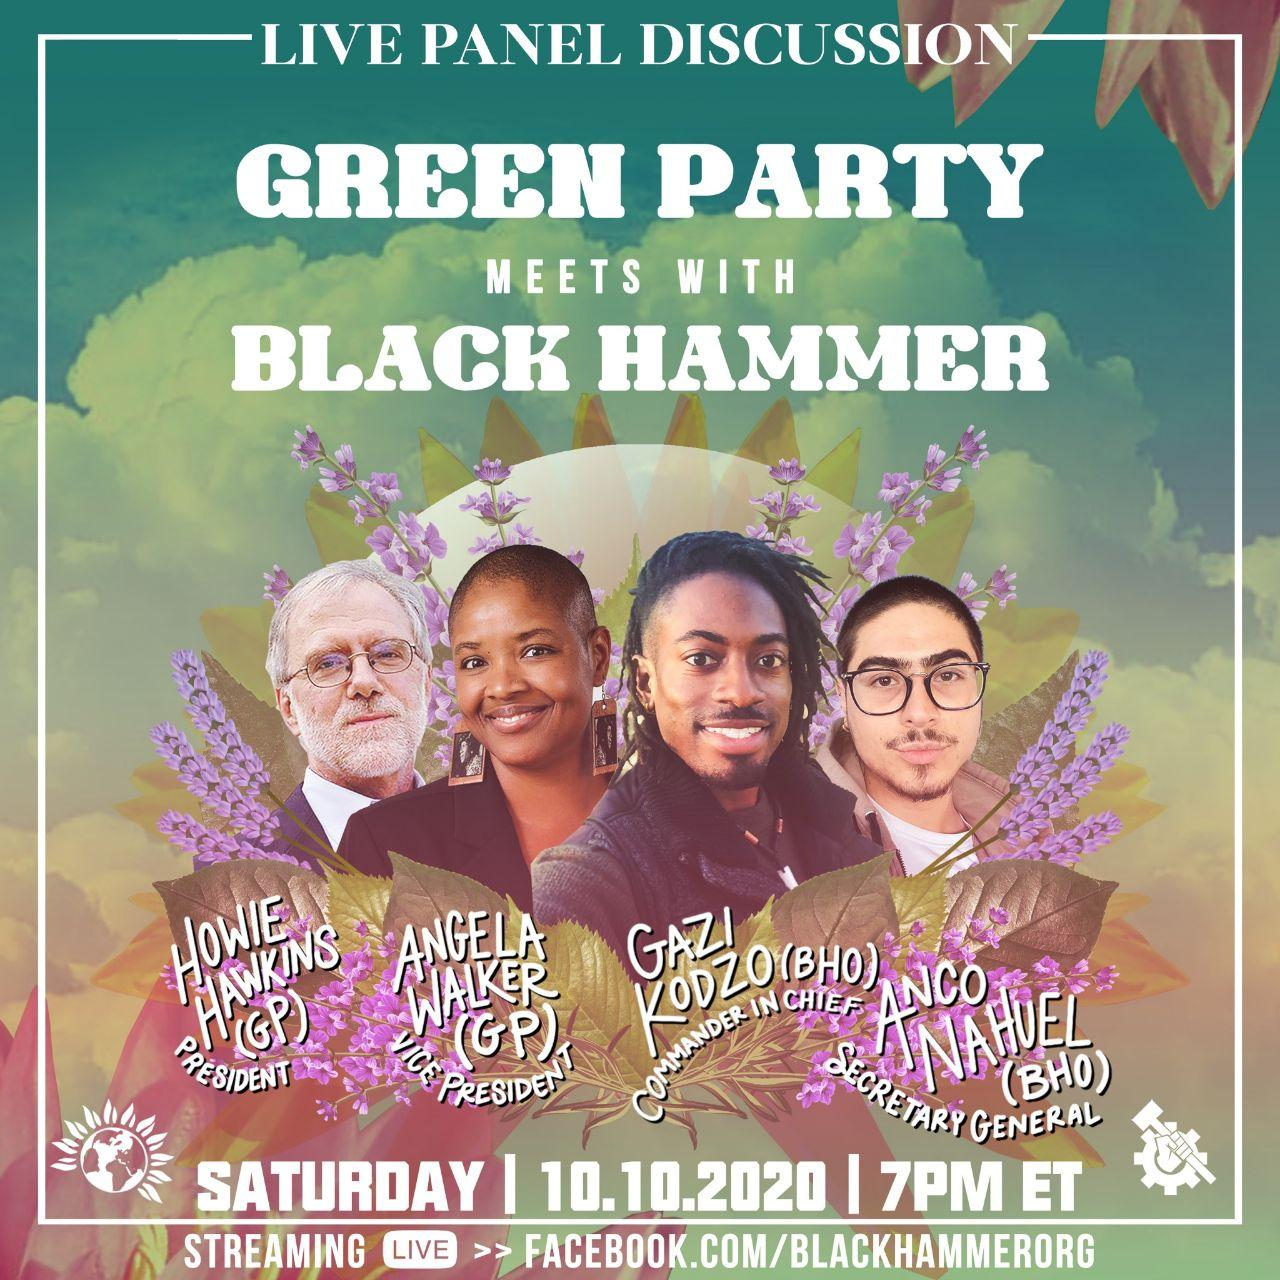 Black Hammer Debates the Green Party